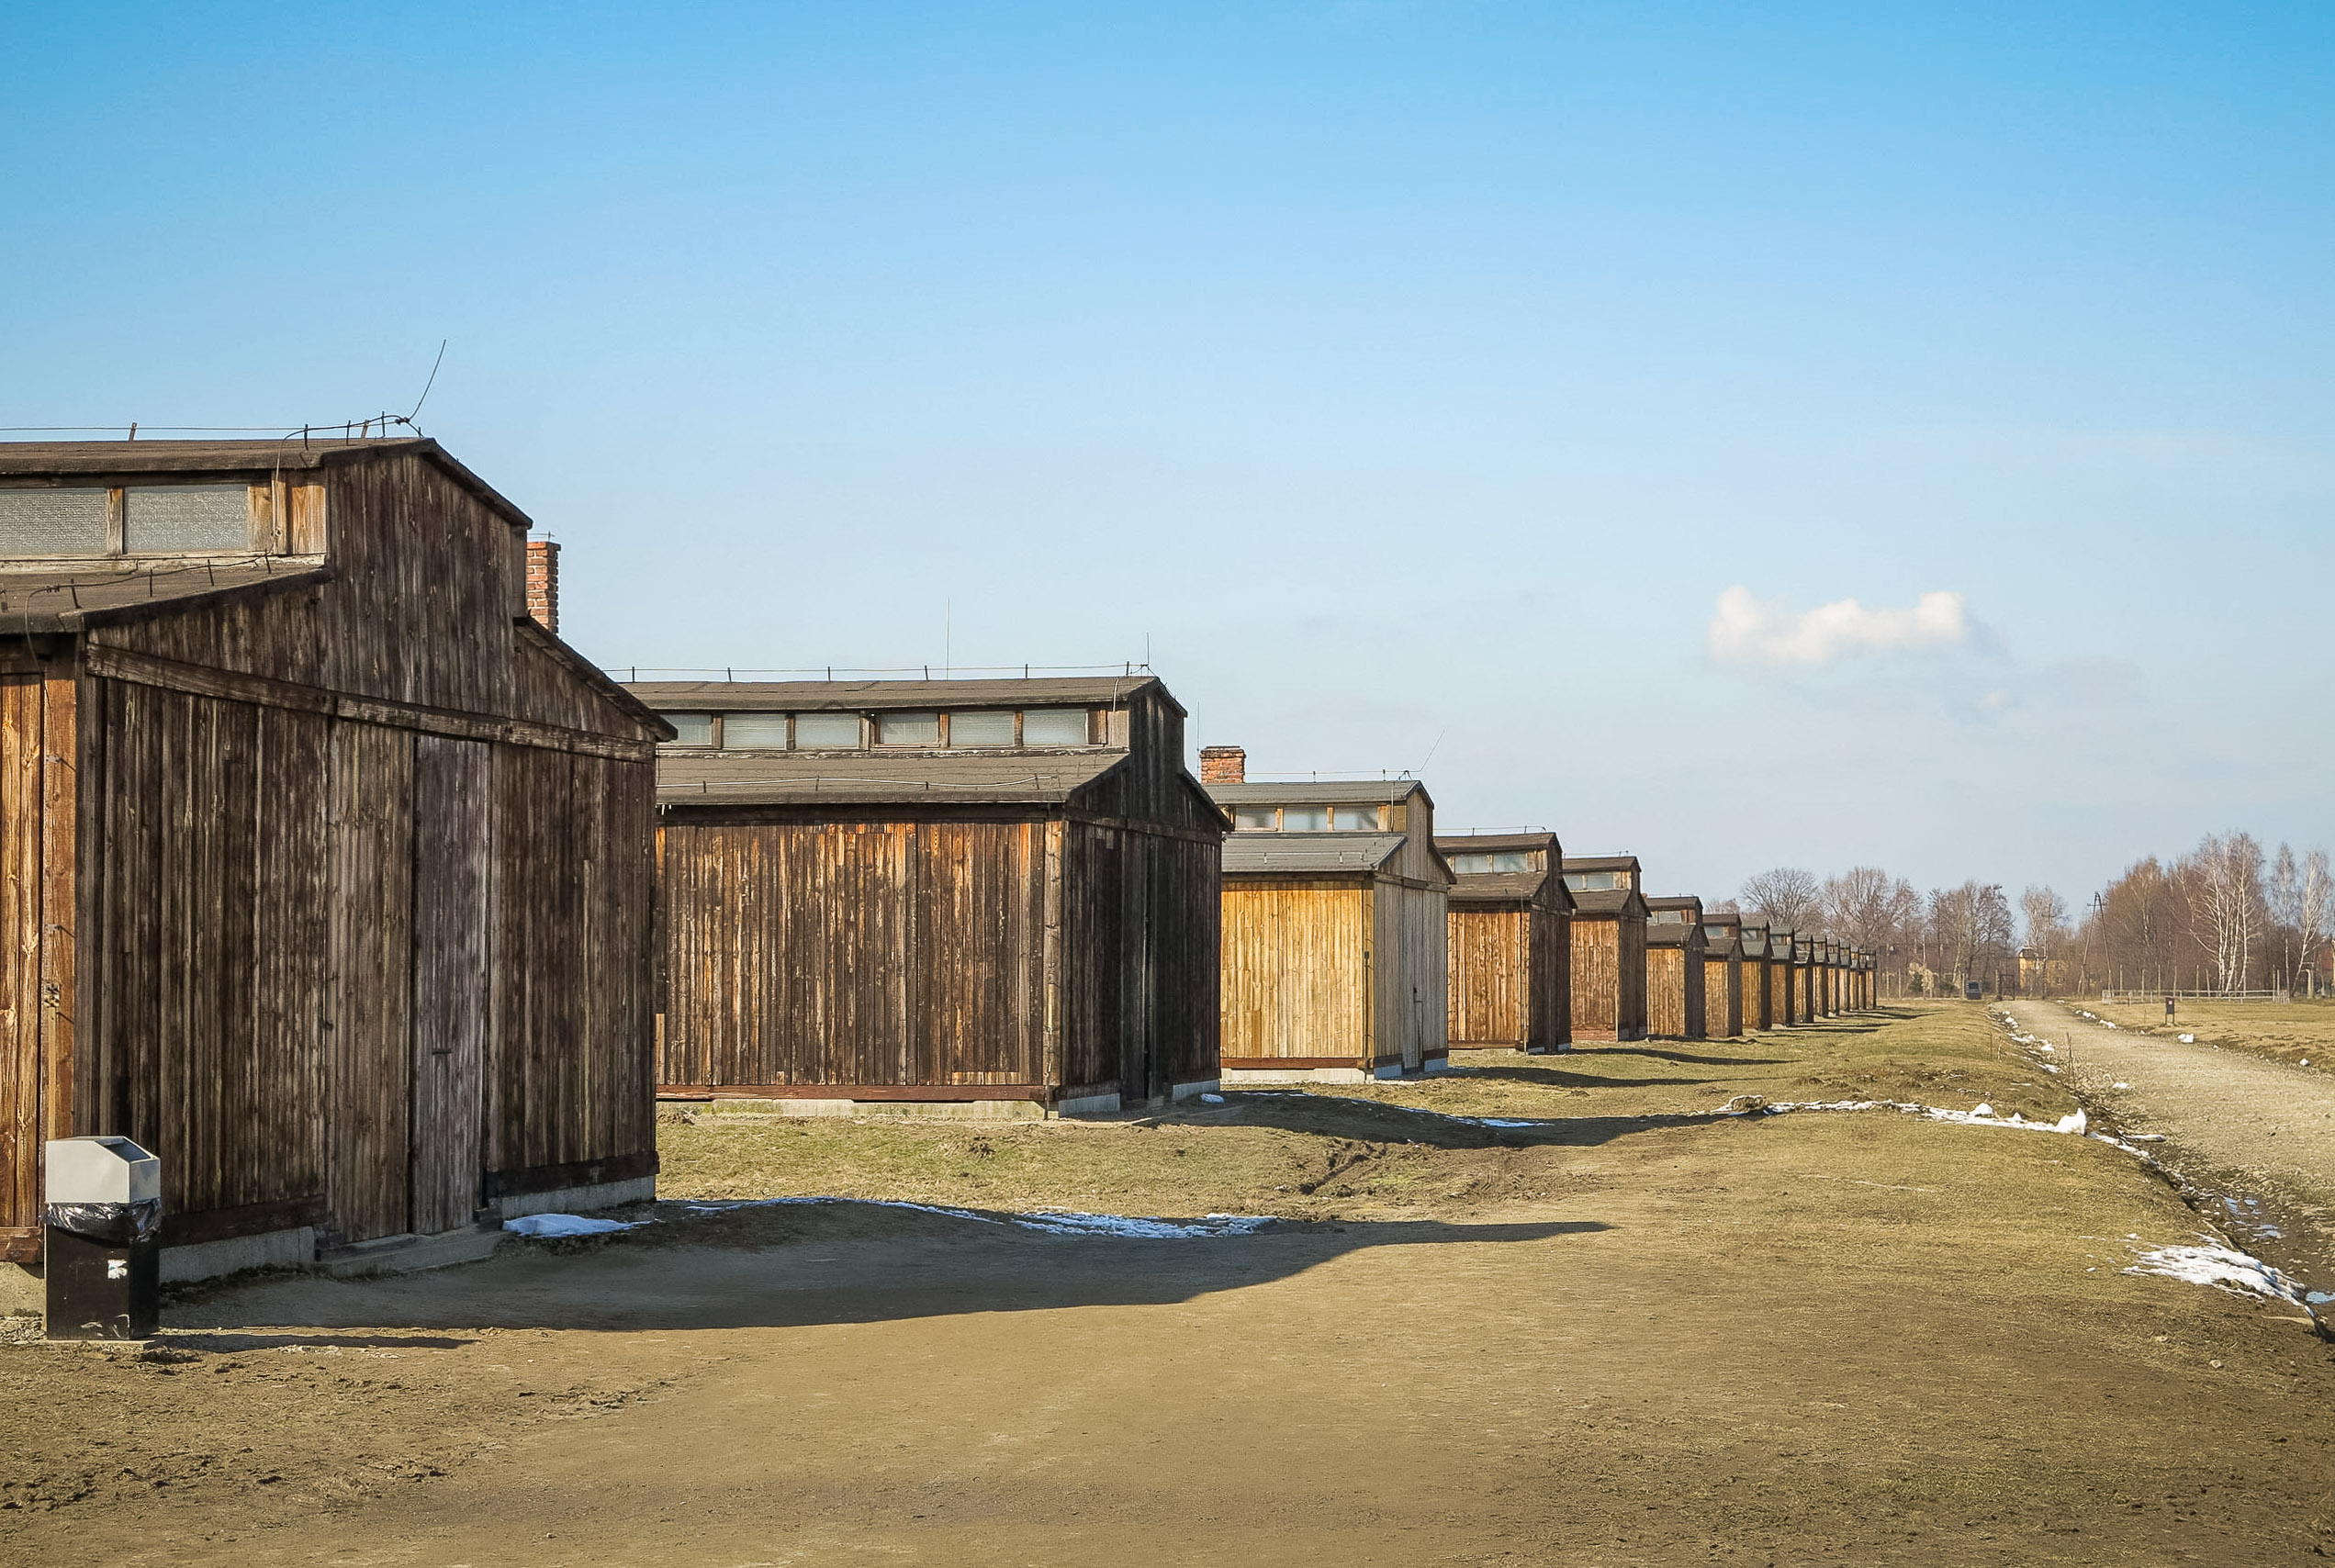 essay on concentration camps concentration camps essays and auschwitz and birkenau concentration camp photo essay minority nomadauschwitz birkenau concentration camp prisoner barracks